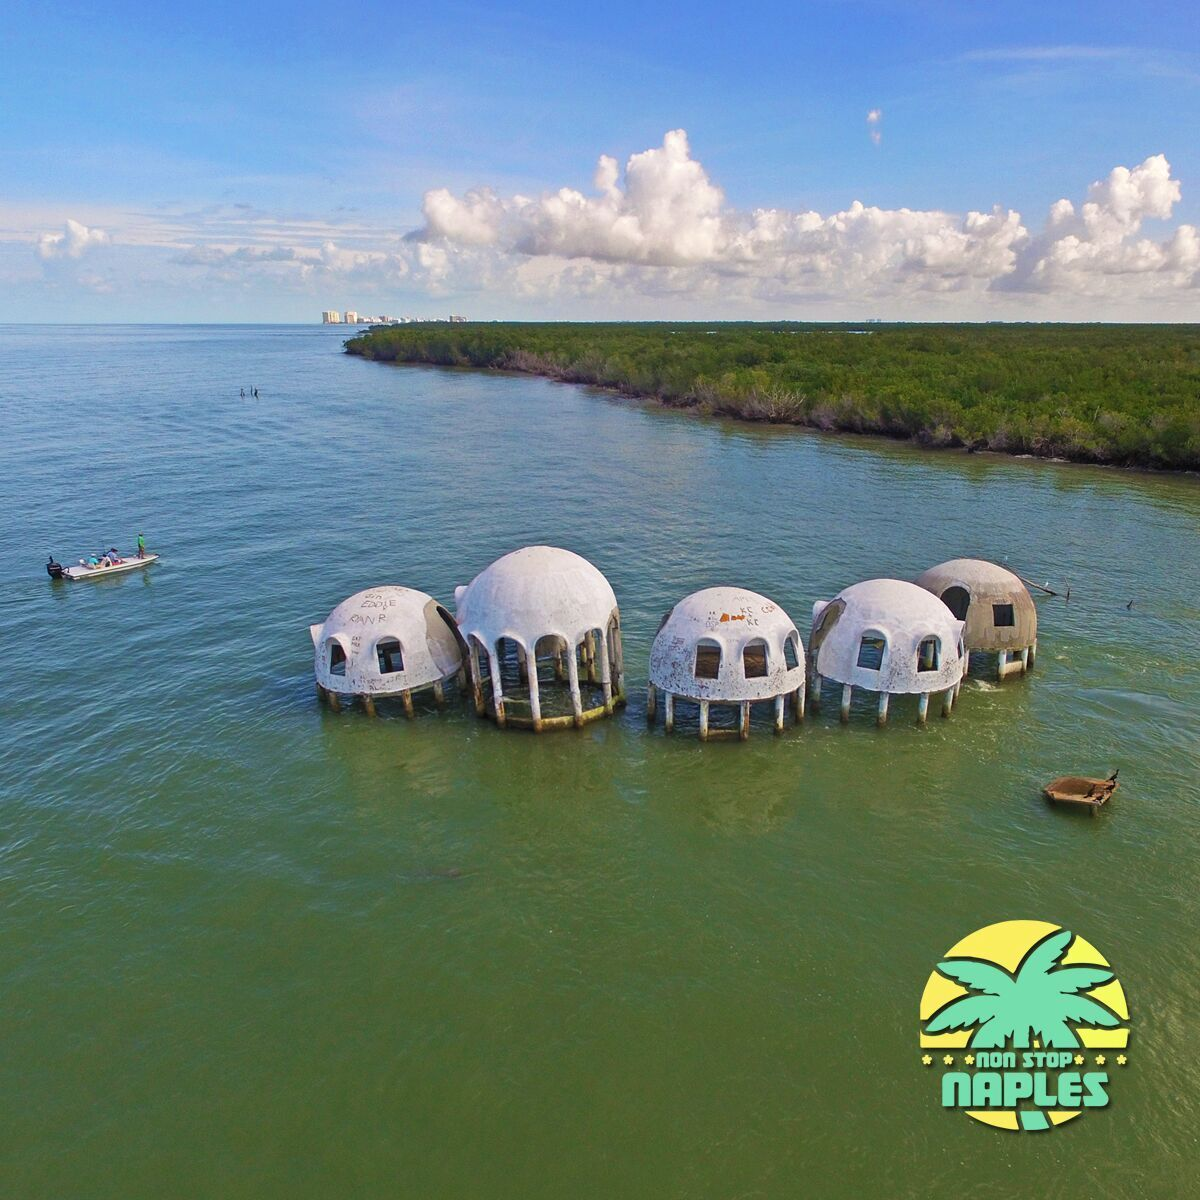 Dome Home Florida: The Cape Romano Dome House Is An Abandoned House Located